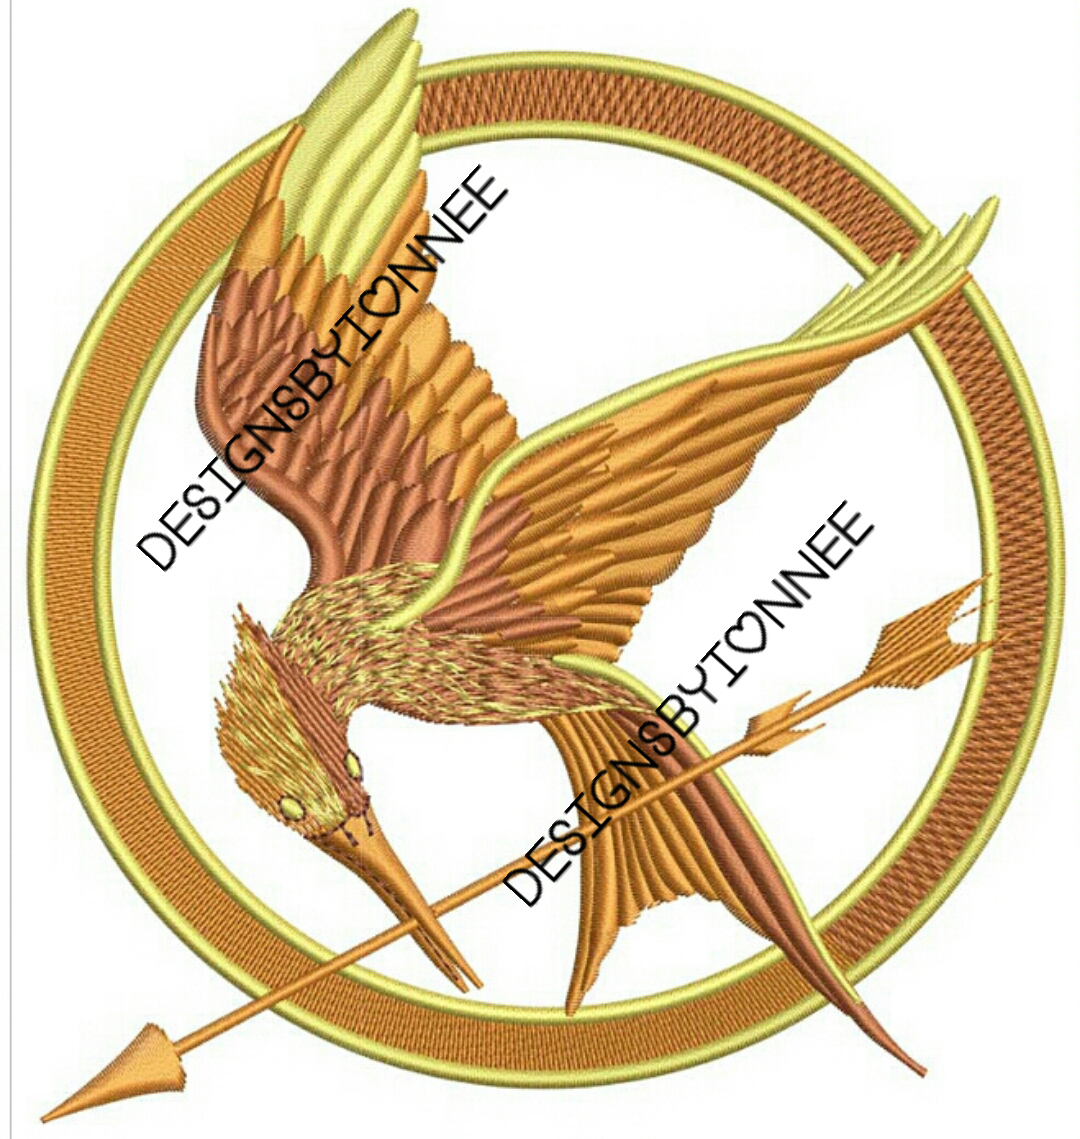 The Hunger Games Logo Embroidery Design -The Hunger Games Logo Embroidery Design 2 Sizes-11